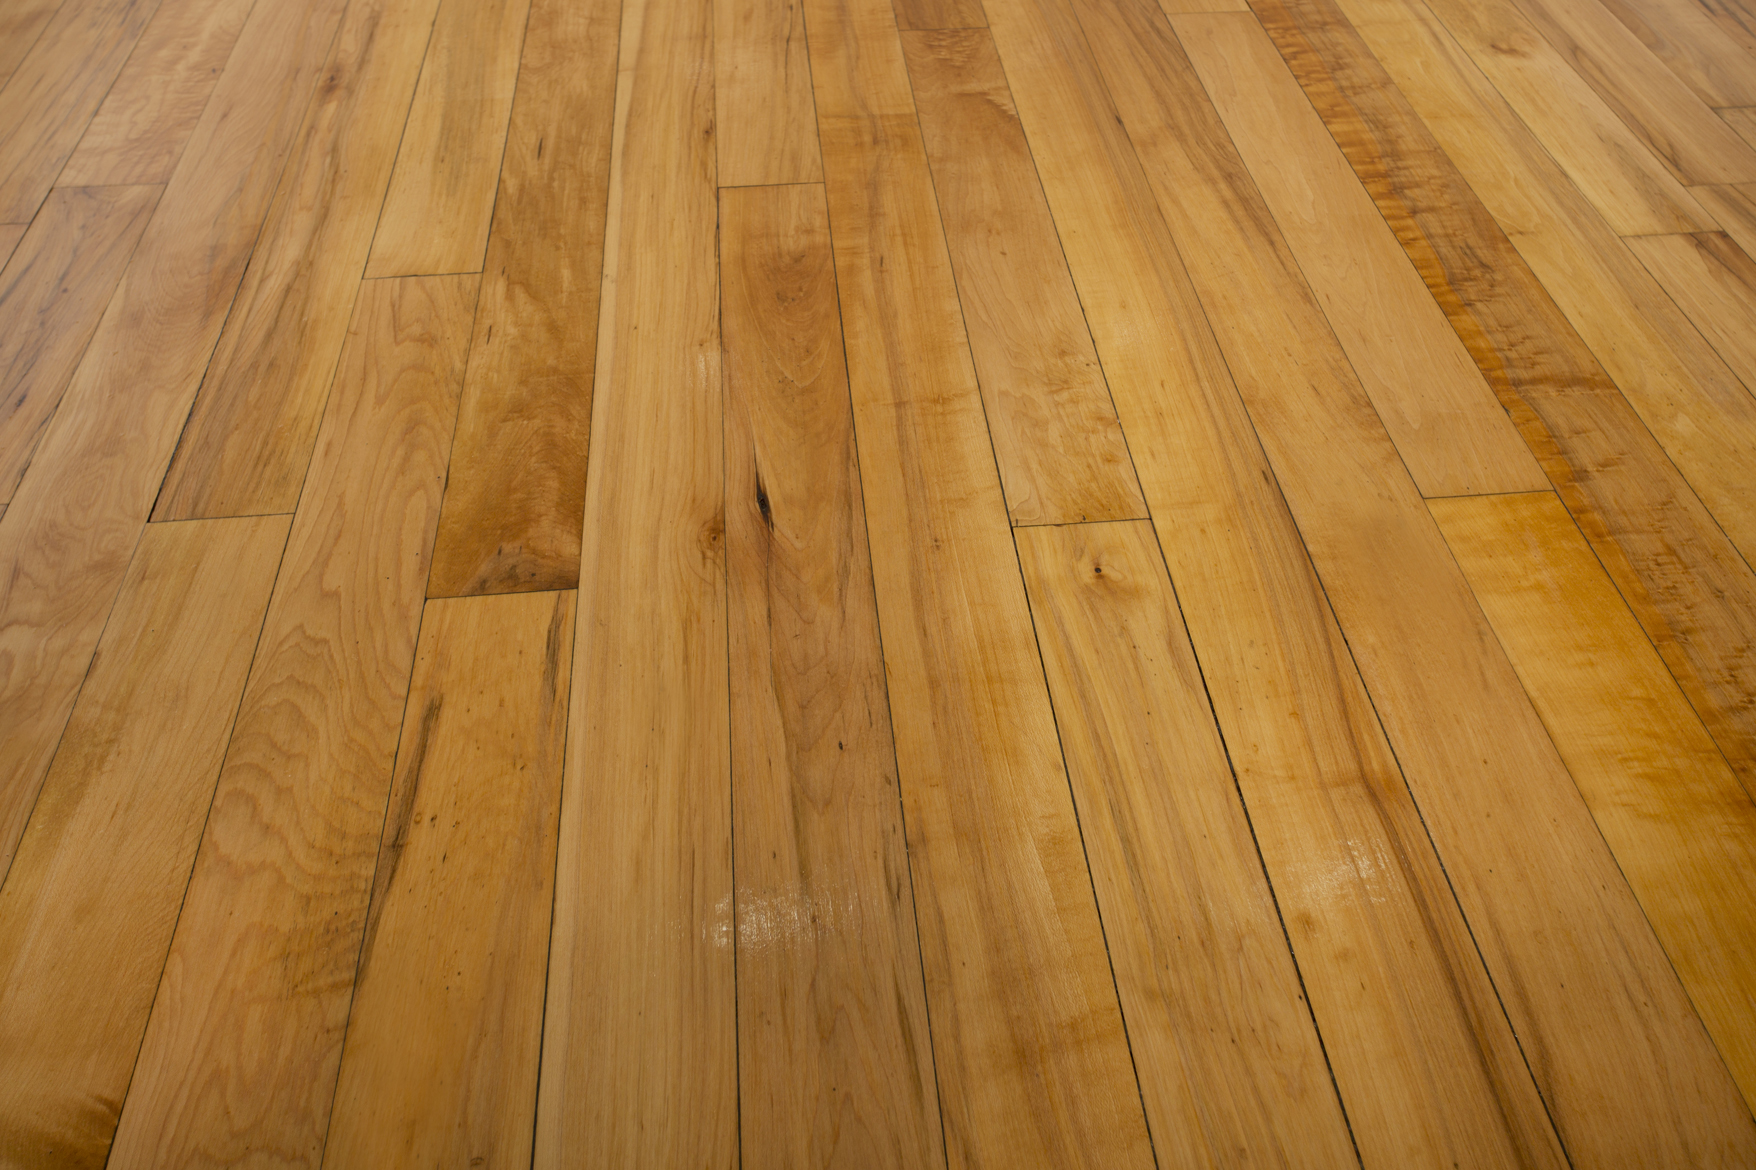 Hardwood floors polish cleaning wood floors stunning for Hardwood floors melbourne